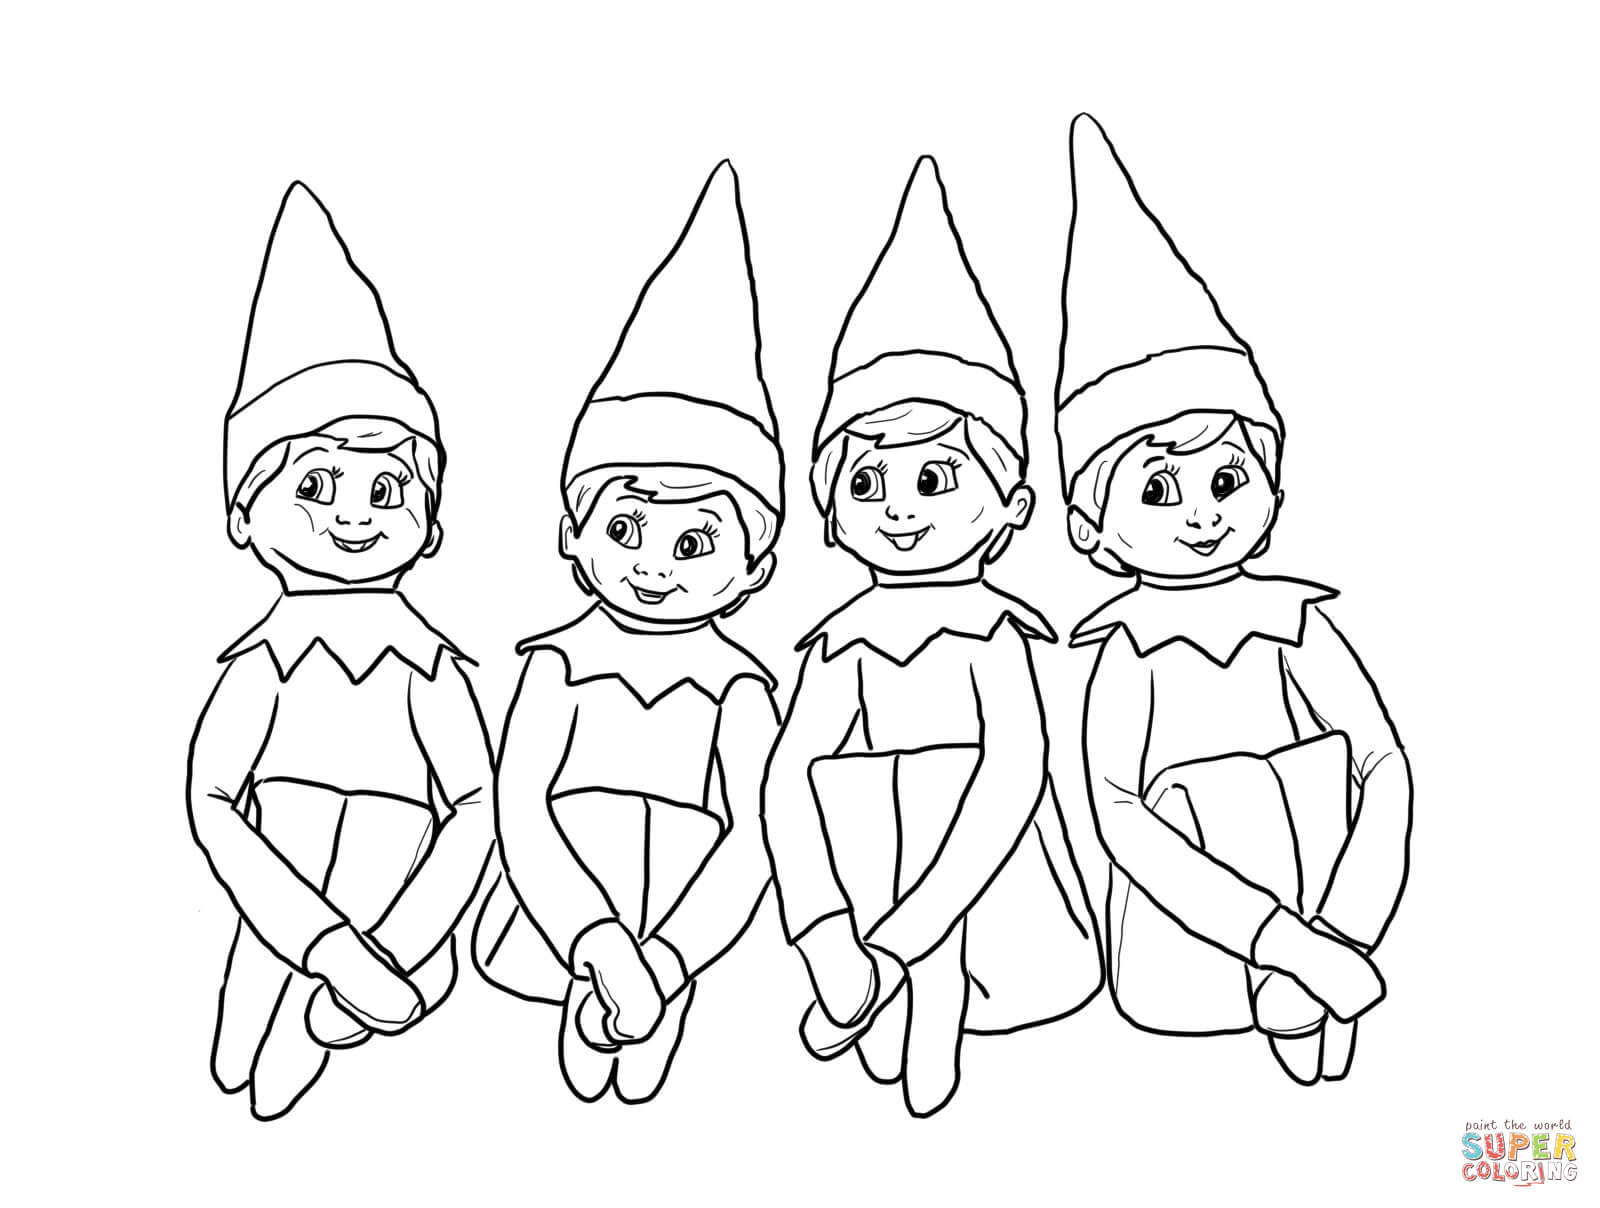 Christmas Elf Coloring Pages Elves On The Shelf Coloring Page Free Printable Coloring Pages